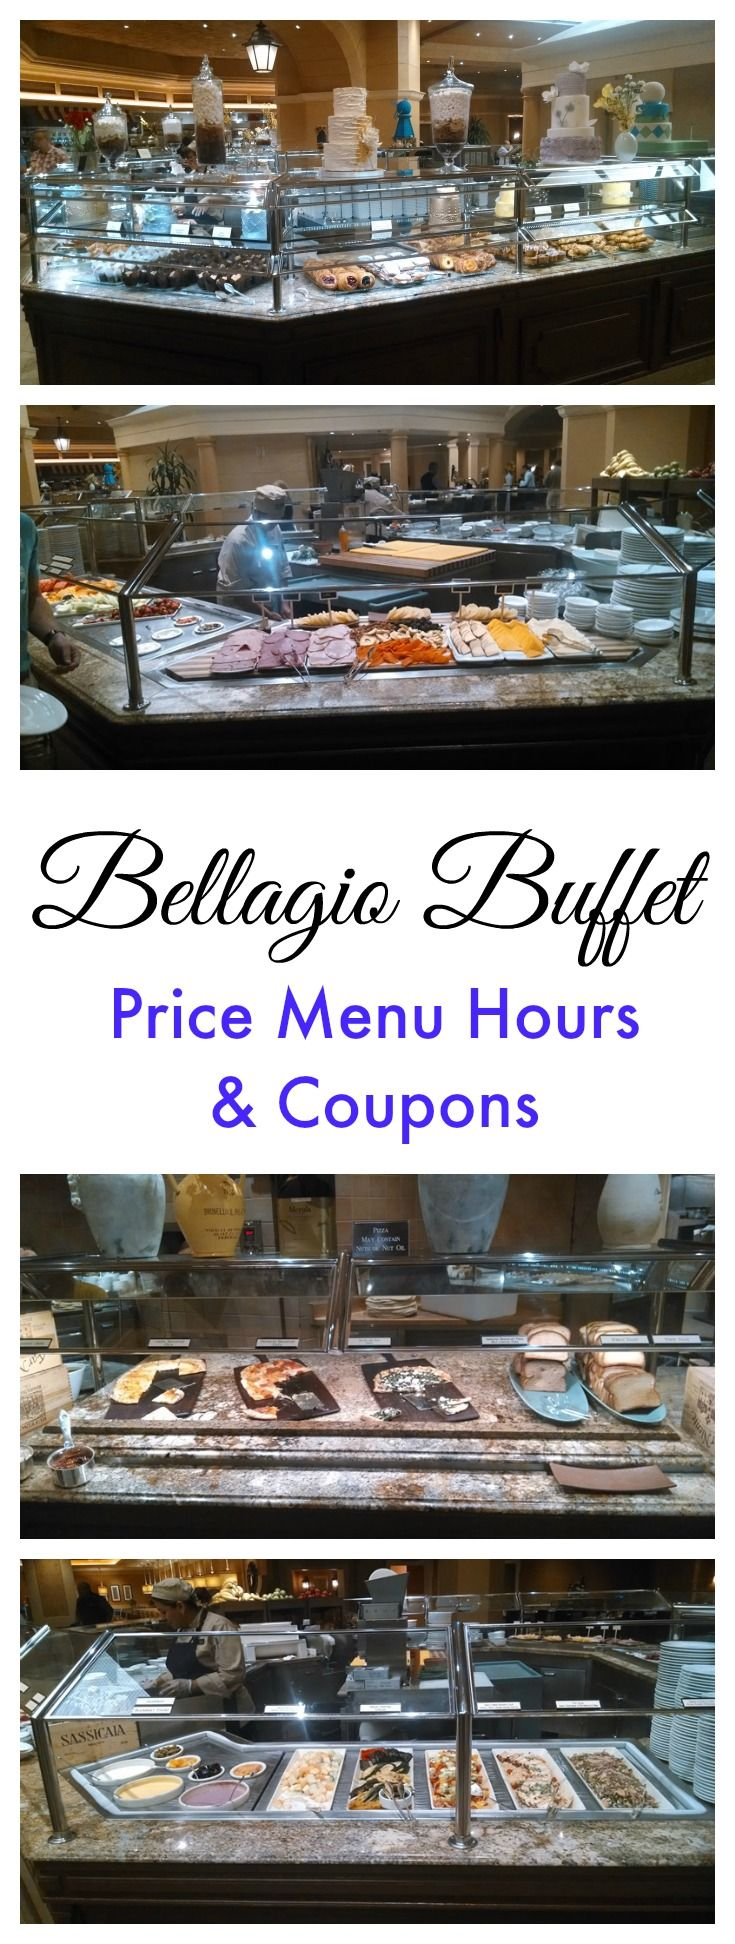 Dec 04,  · The Buffet at Bellagio, Las Vegas: See 10, unbiased reviews of The Buffet at Bellagio, rated 4 of 5 on TripAdvisor and ranked # of 4, restaurants in Las Vegas.4/4(K).